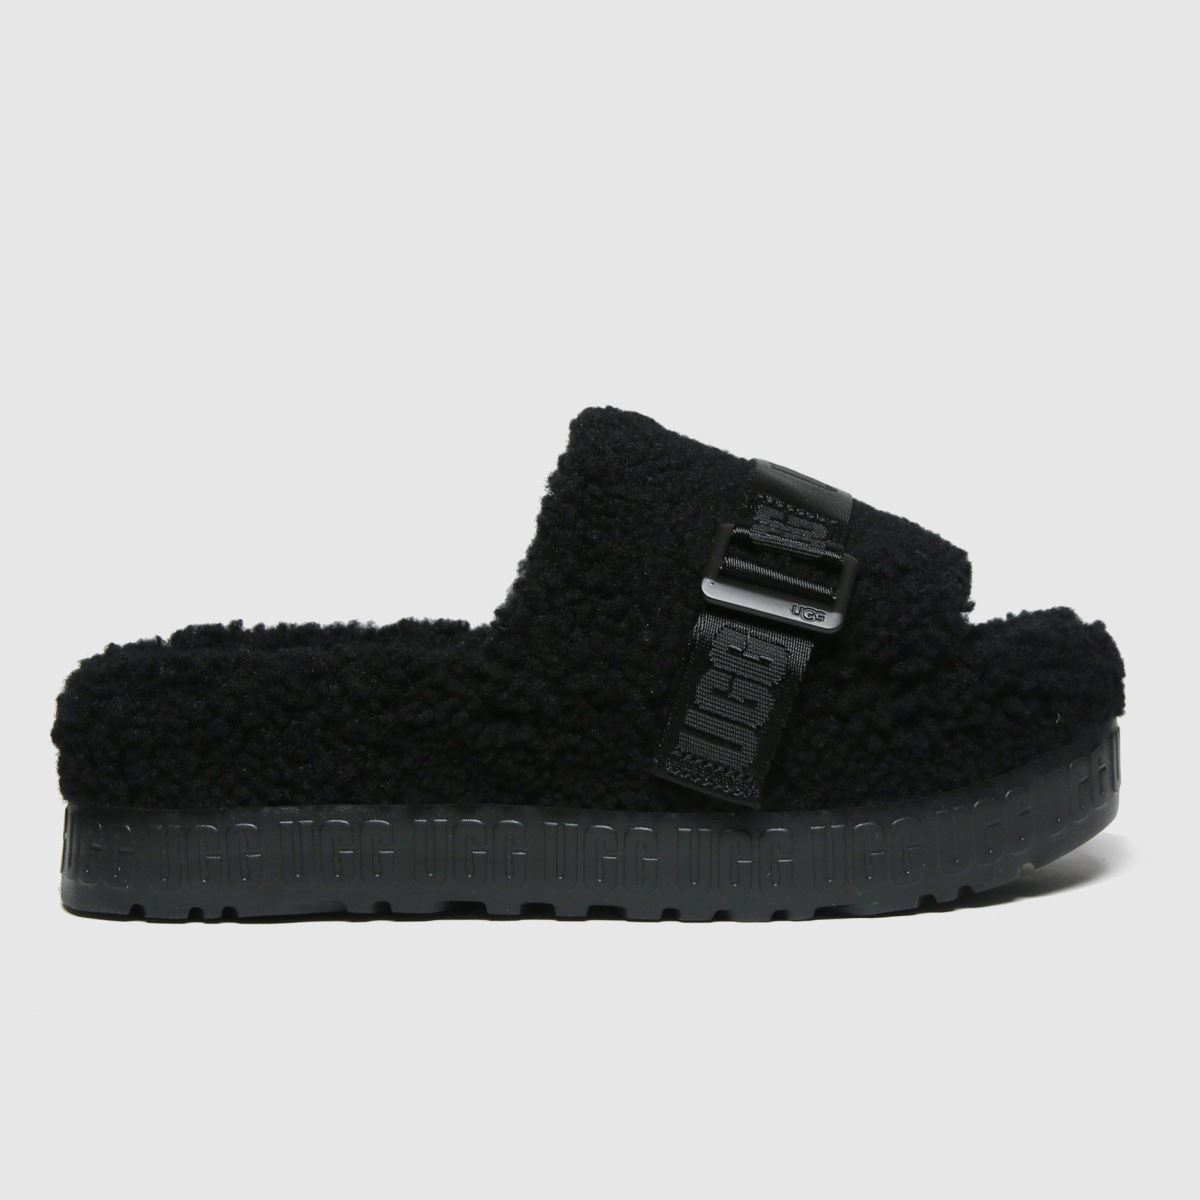 UGG Black Fluffita Slippers